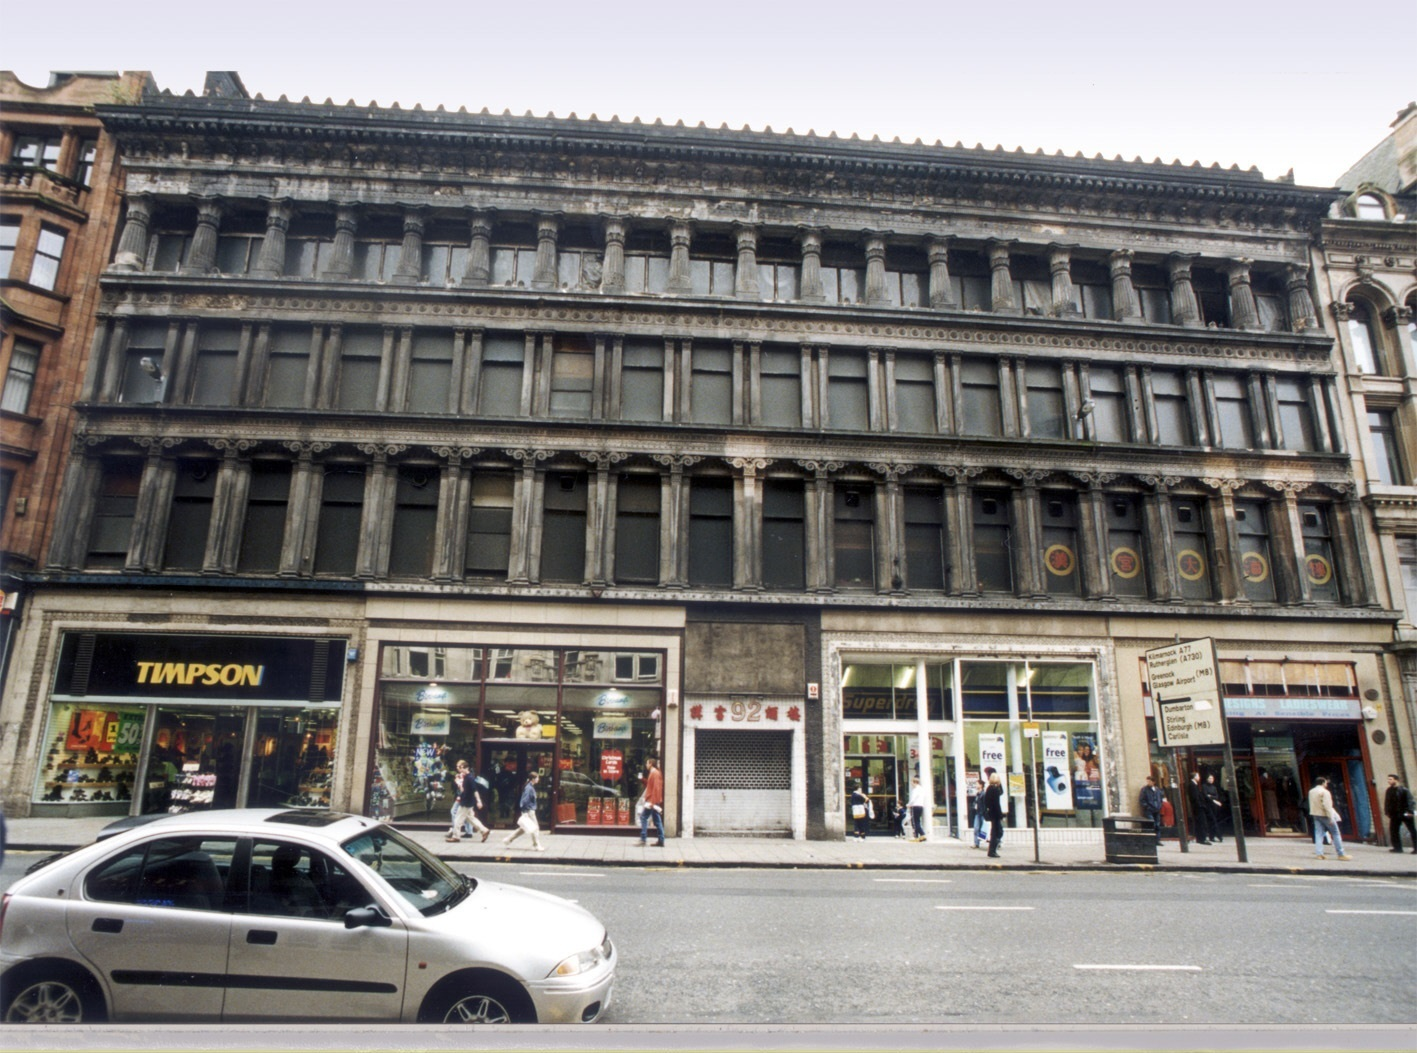 A picture of the exterior of the Egyptian Halls taken in 2010.